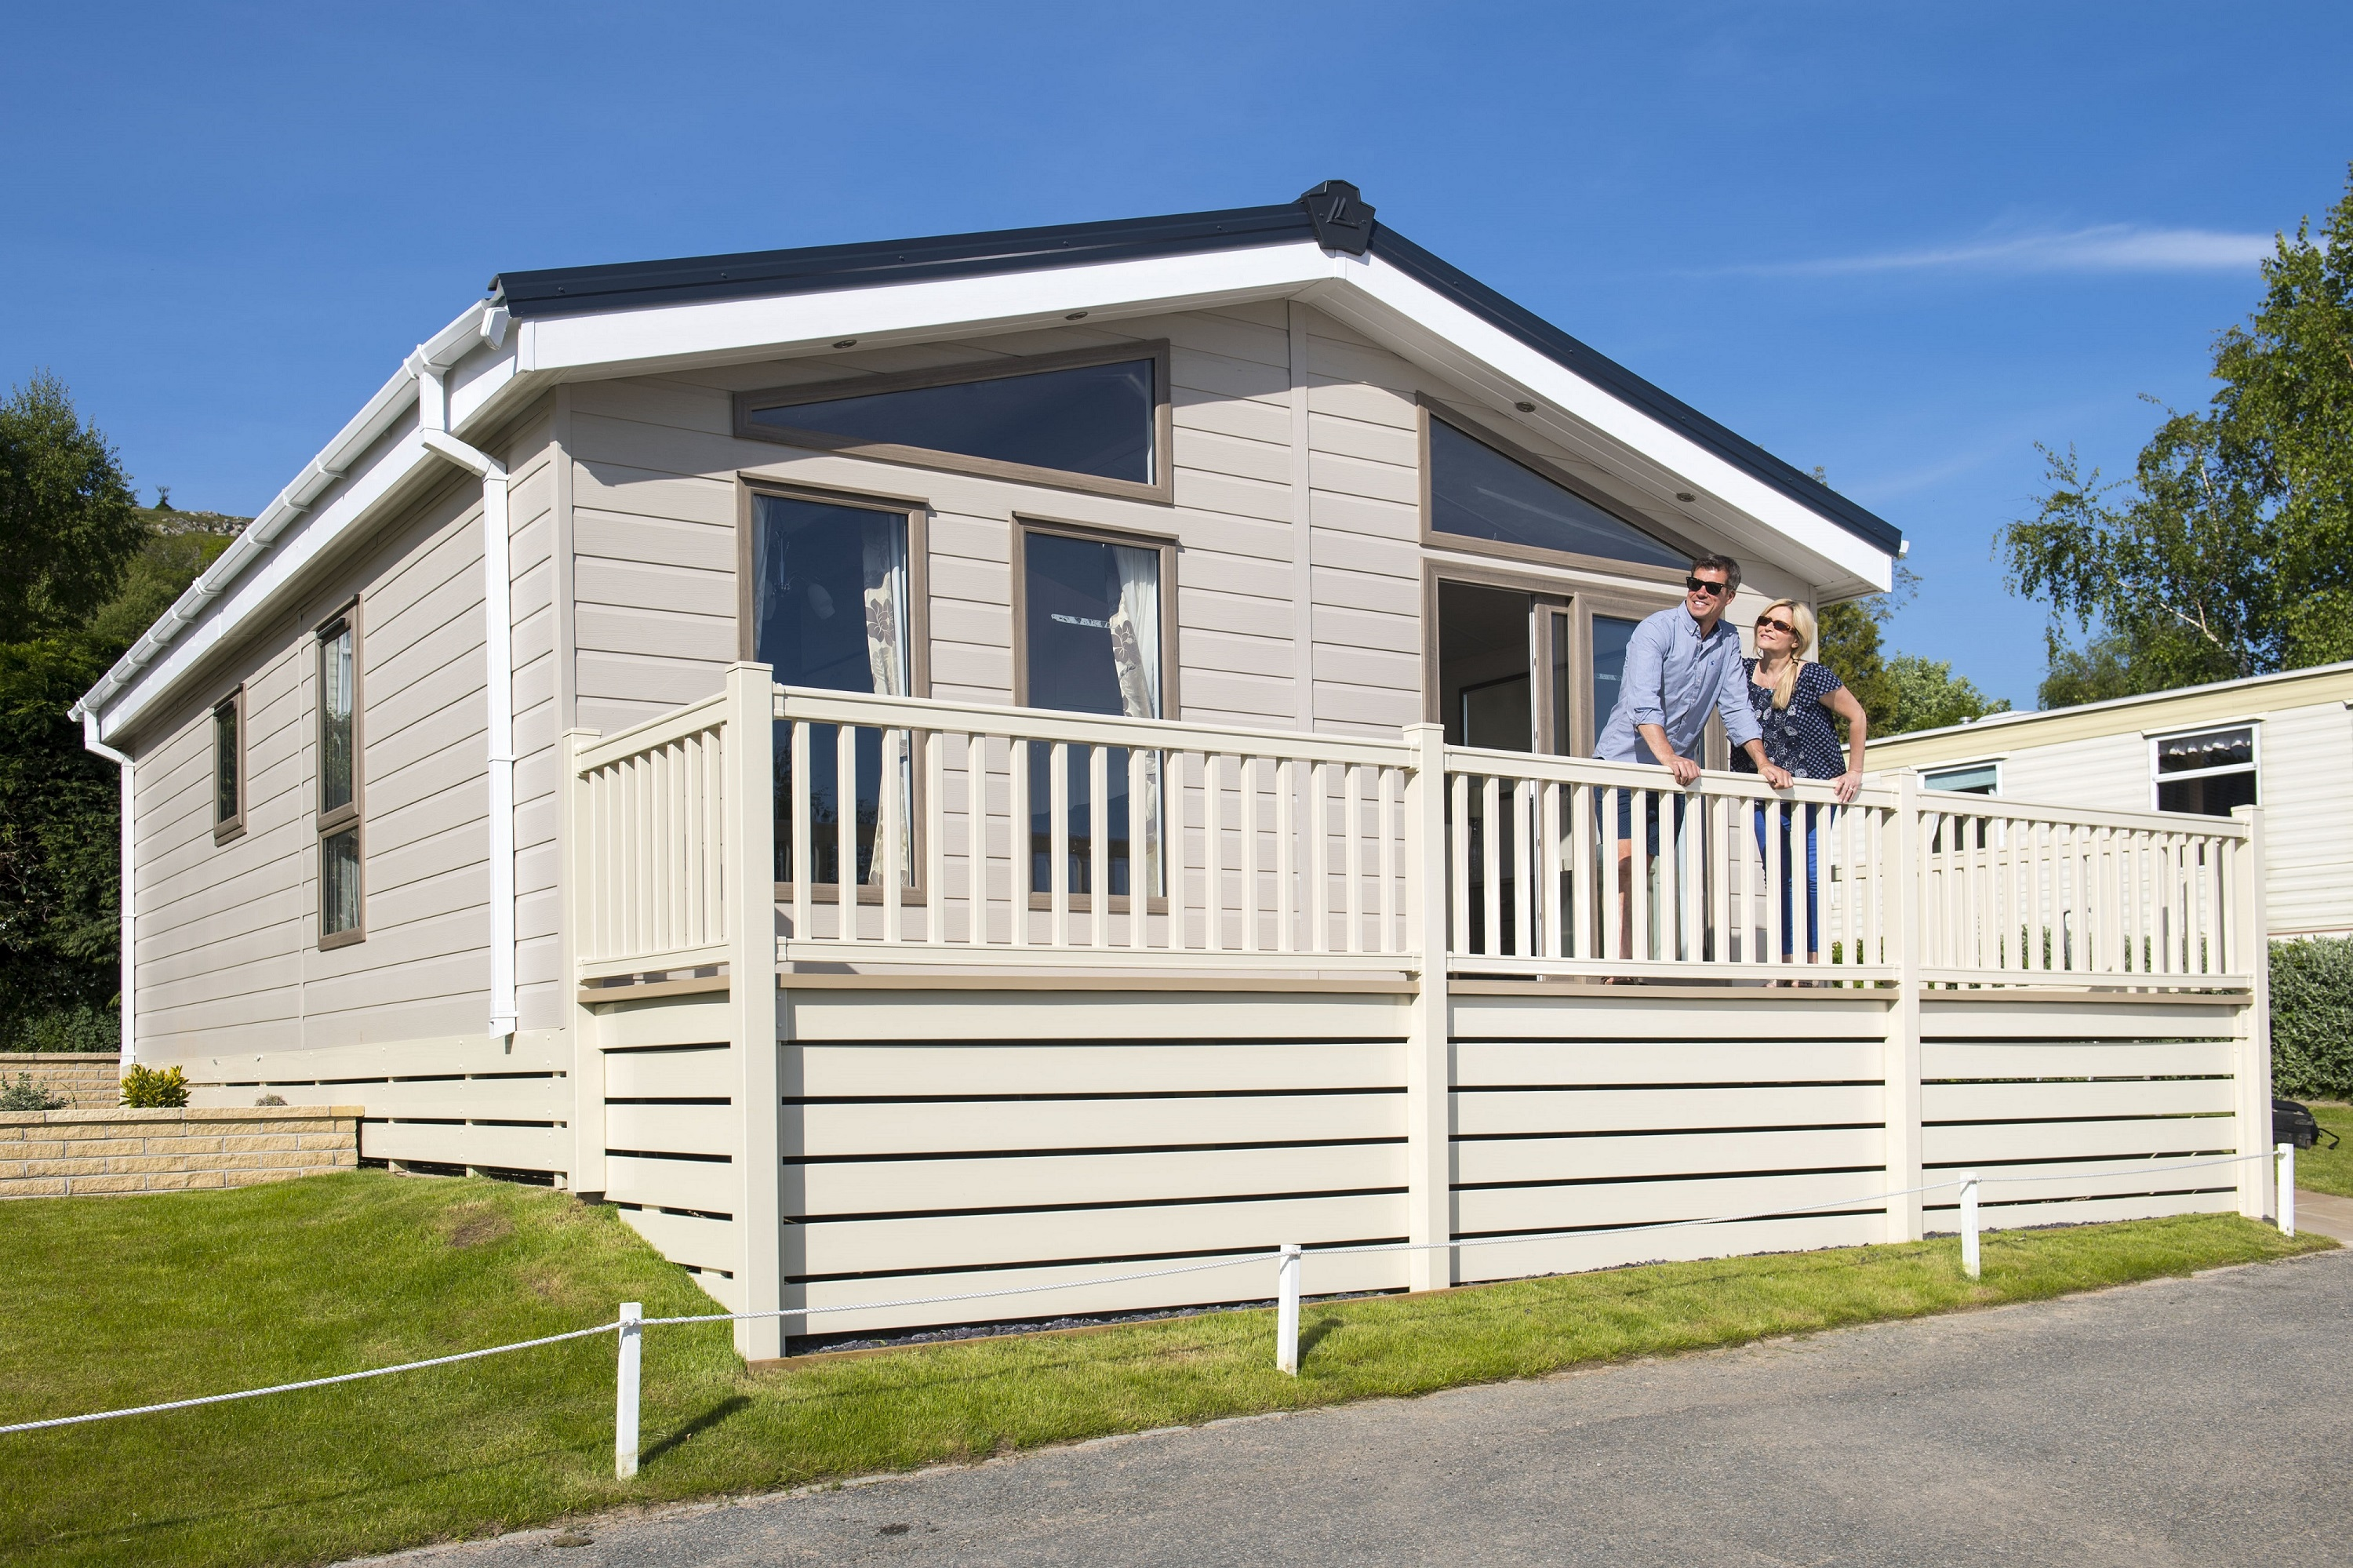 Caravan for sale in north wales at tan rallt luxury holiday park